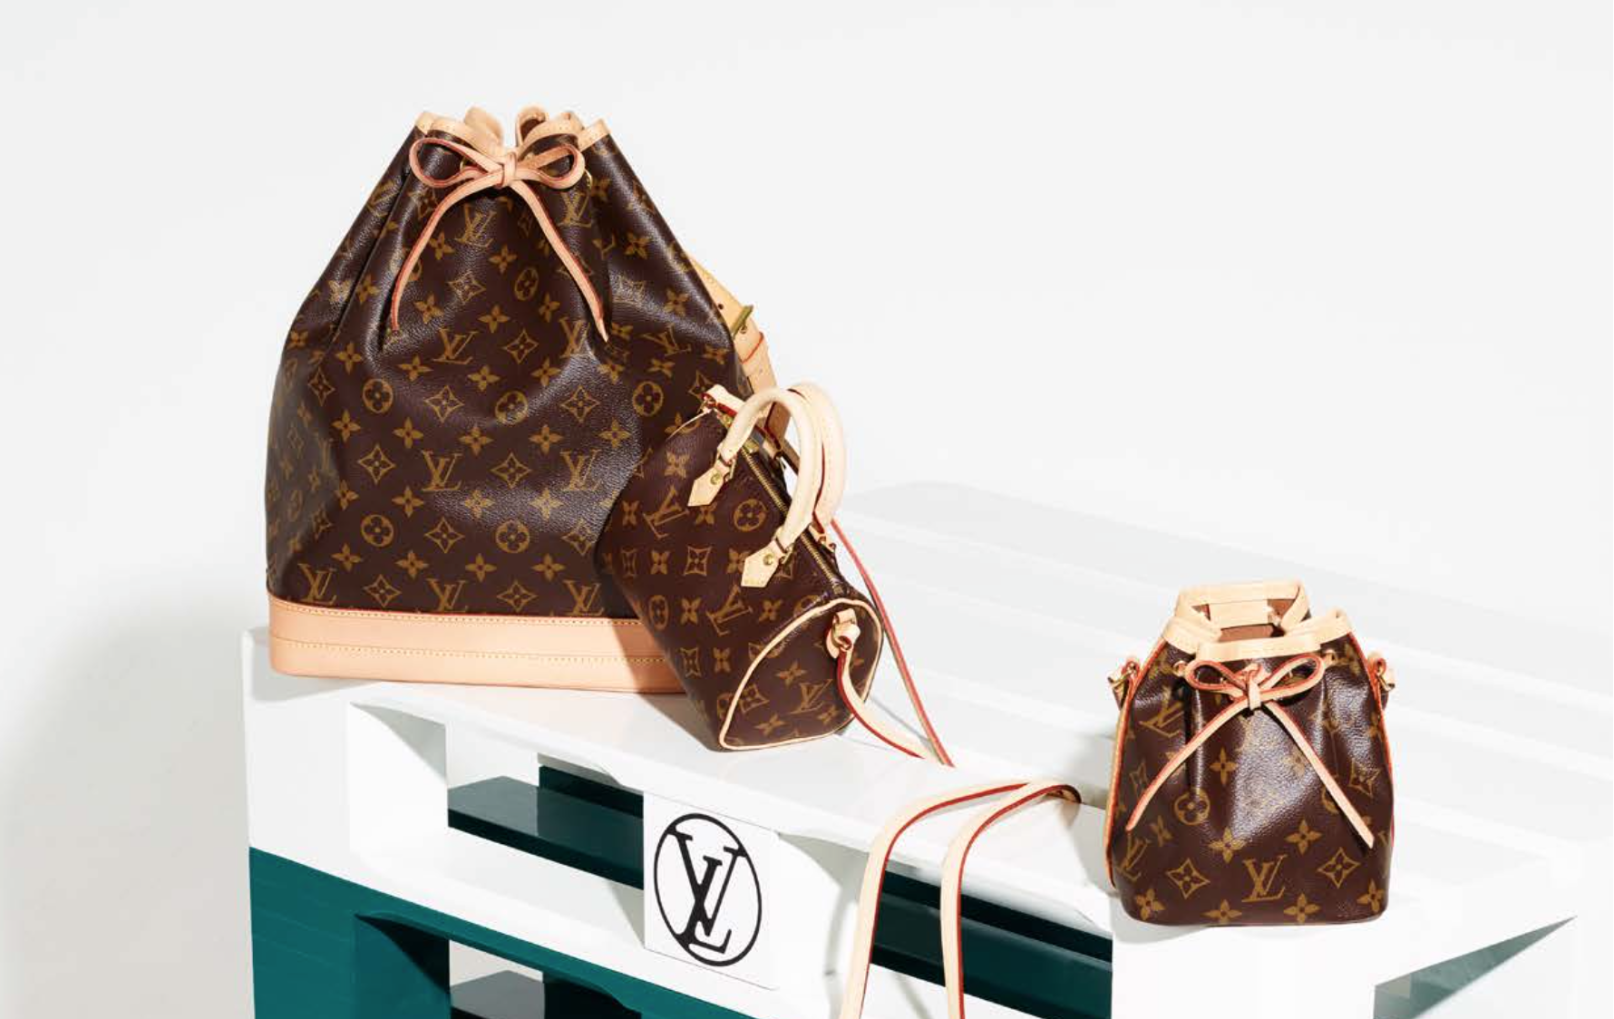 cceef20a2690 Louis Vuitton with seven iconic nano bags